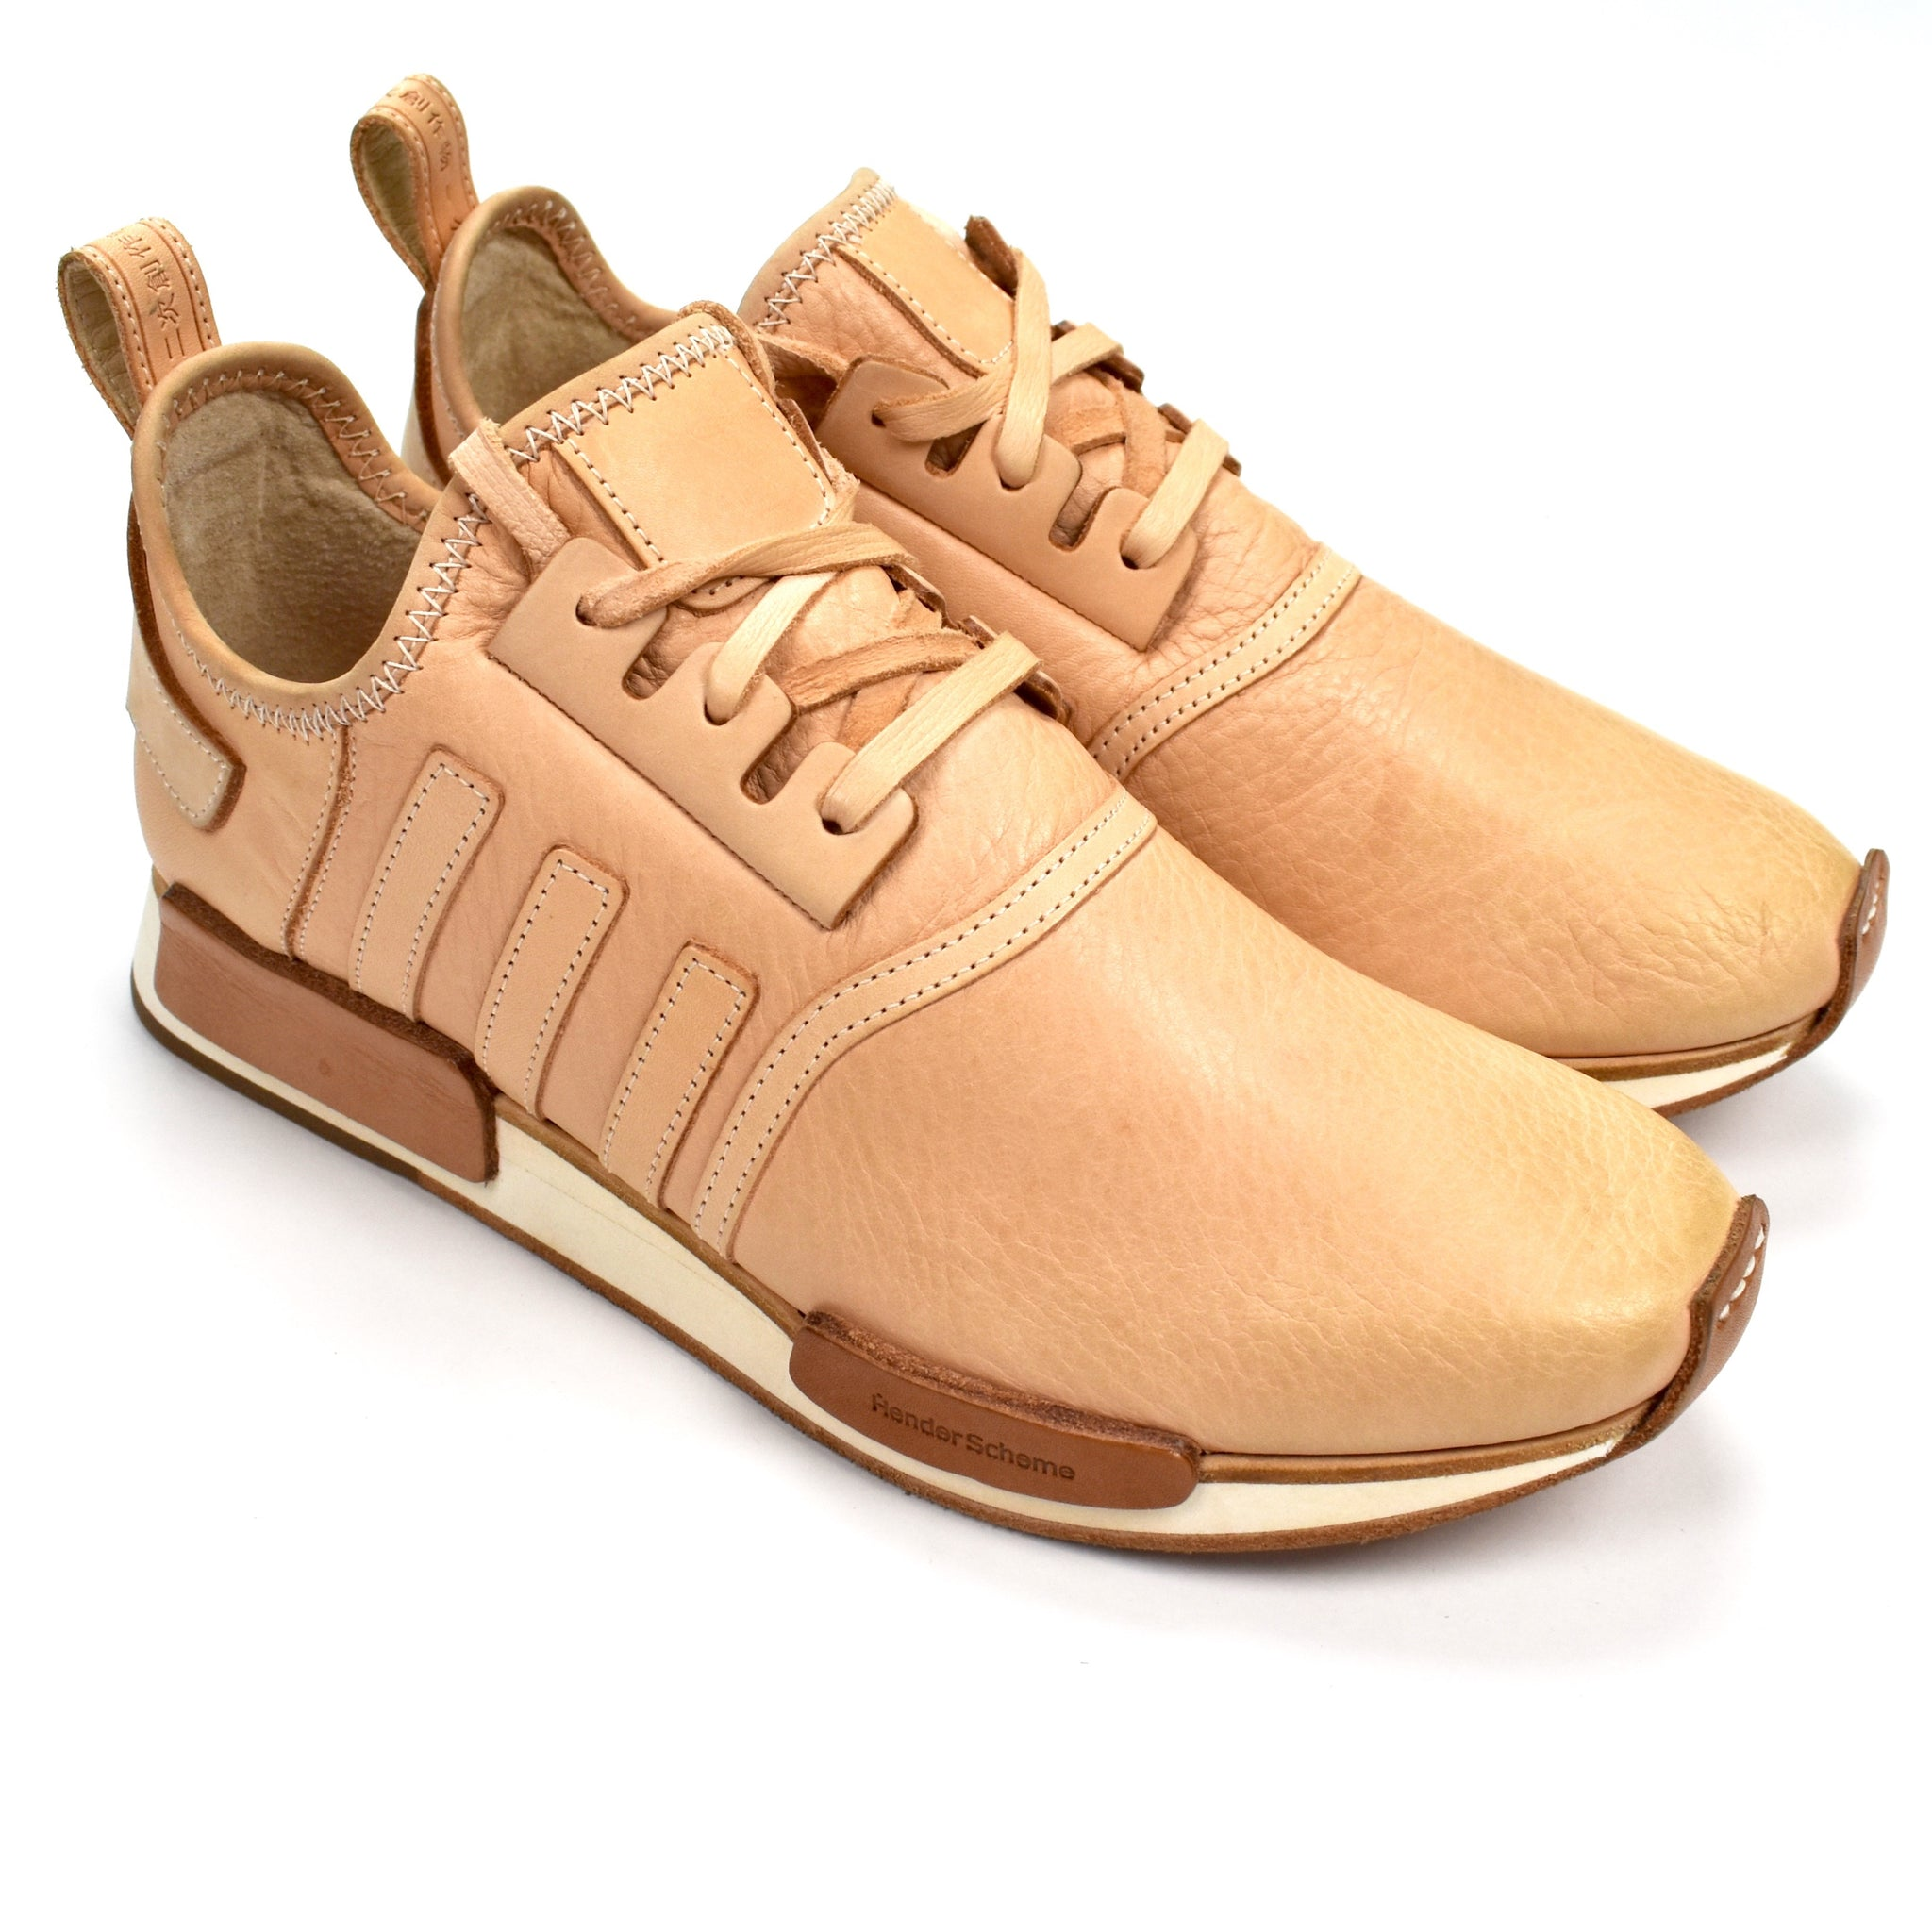 1832ae8807340 Adidas x Hender Scheme - NMD R1 HS  Manual Industrial Products  – eluXive